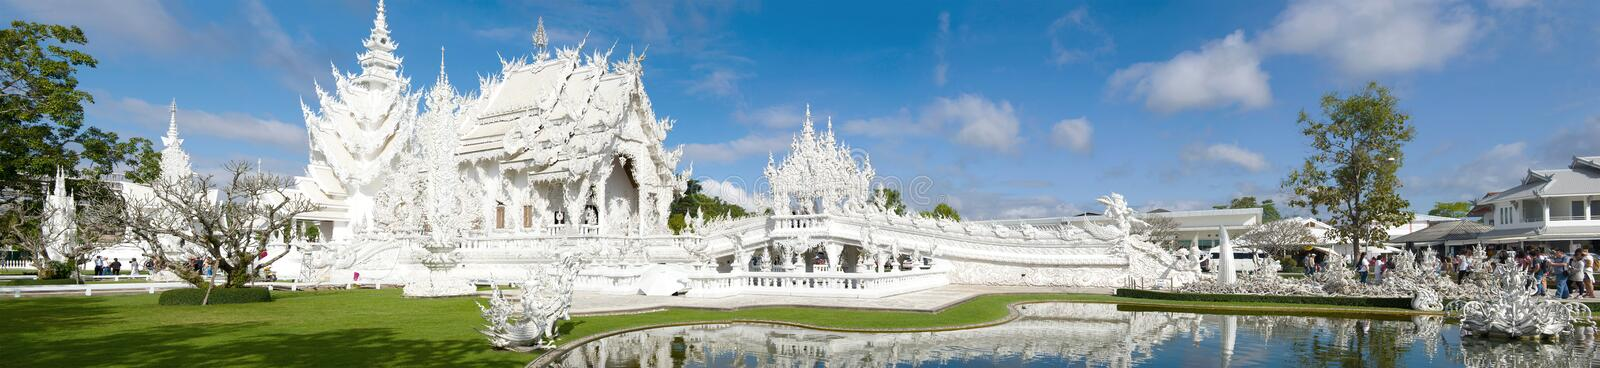 Panorama of the White Temple Wat Rong Khun, Chiang Rai. Thailand stock photography